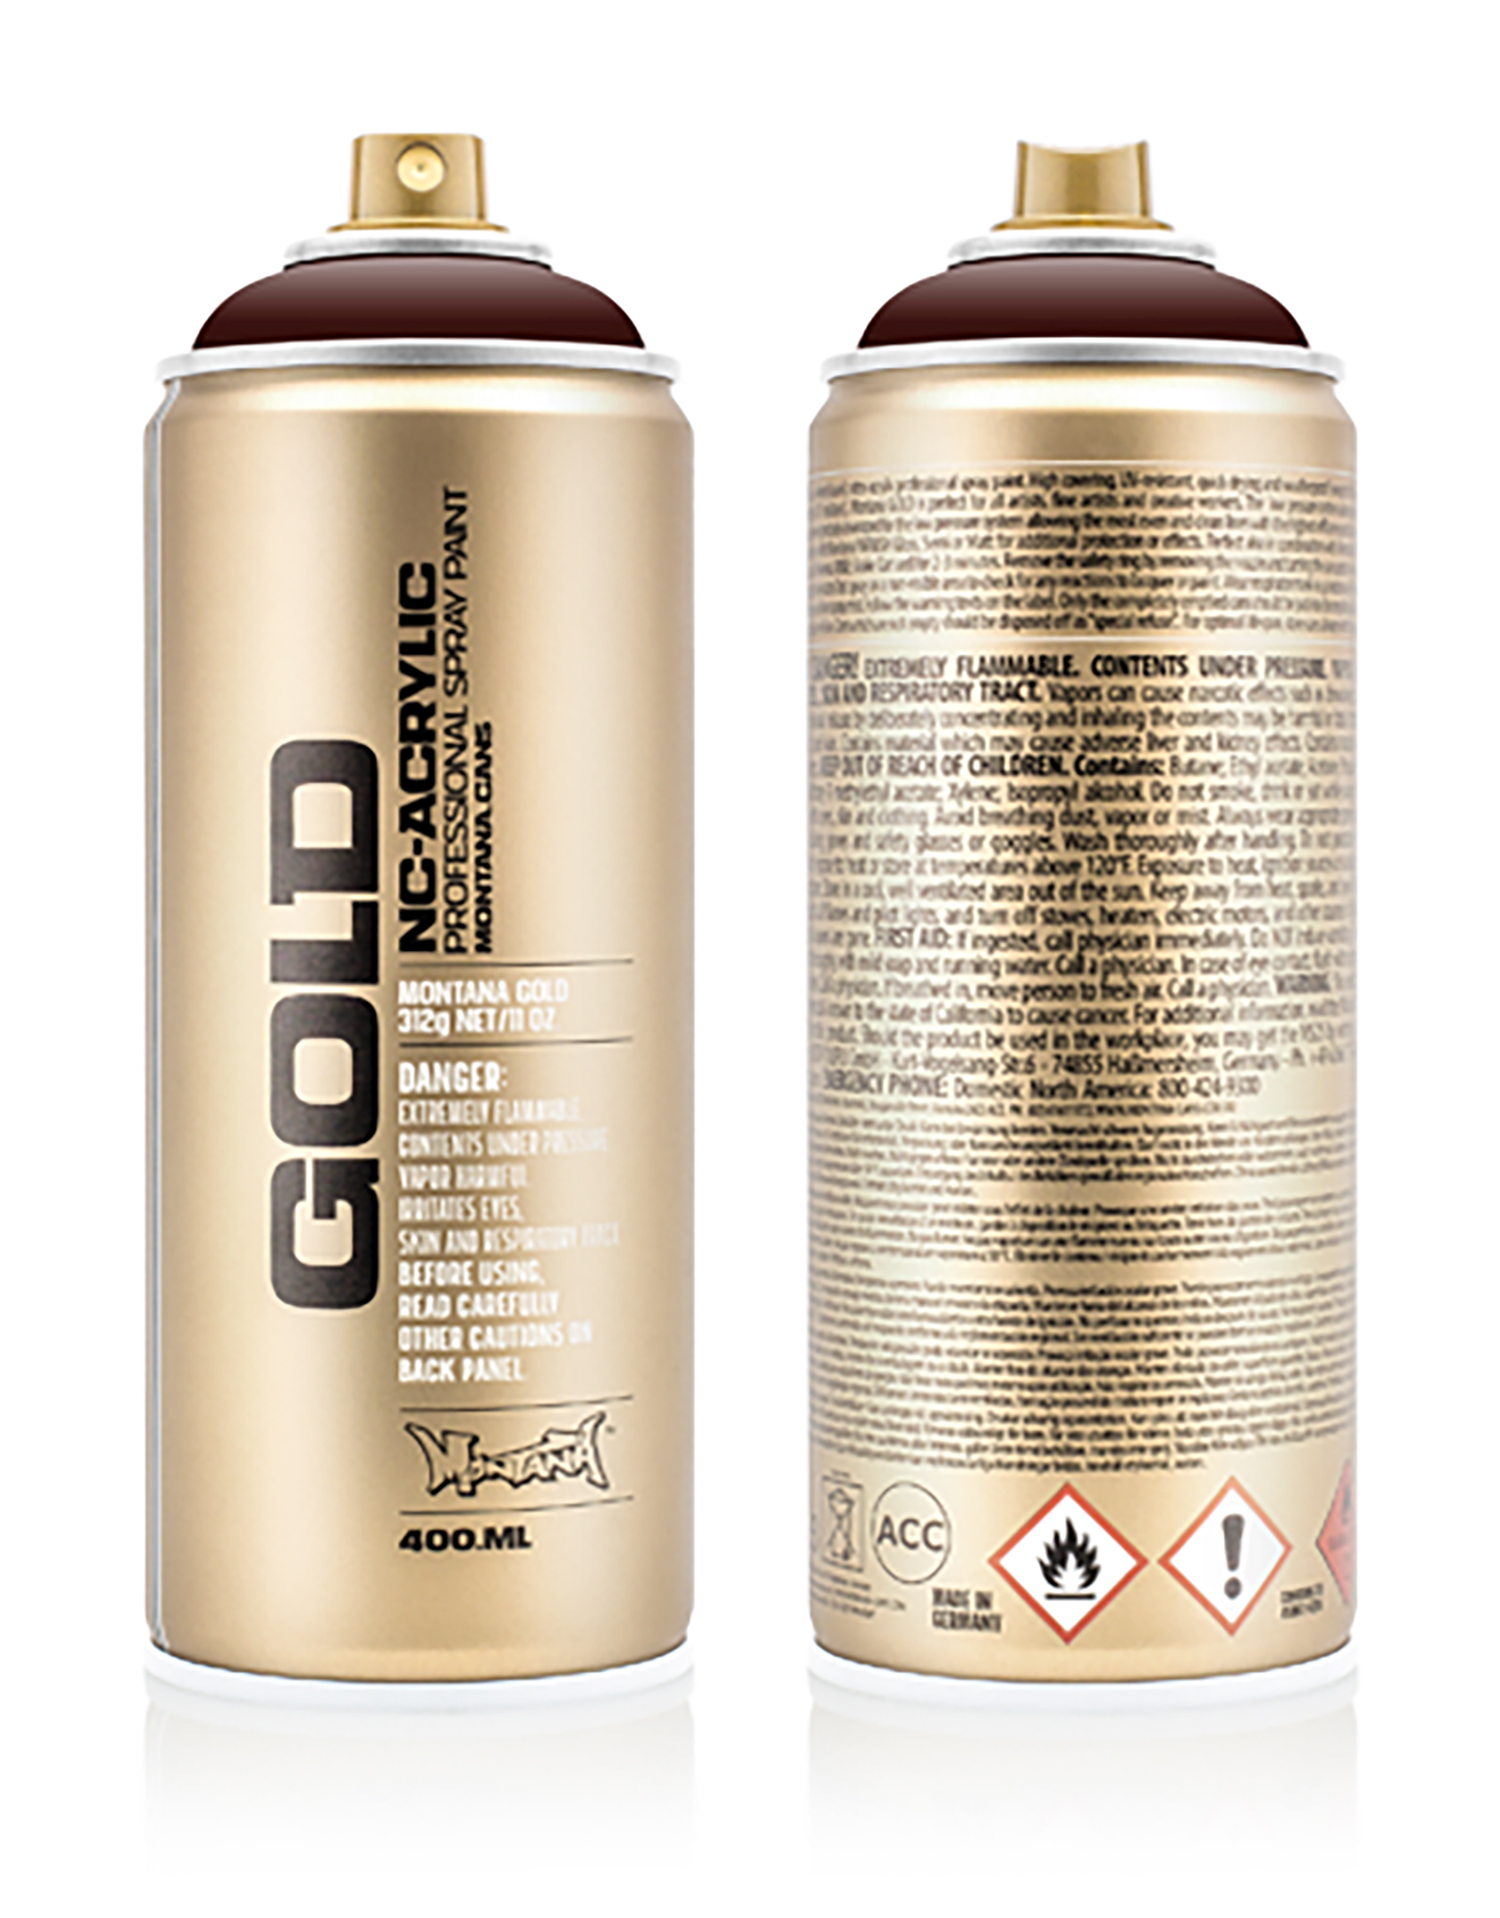 MONTANA-GOLD-SPRAY-400ML-G-3080